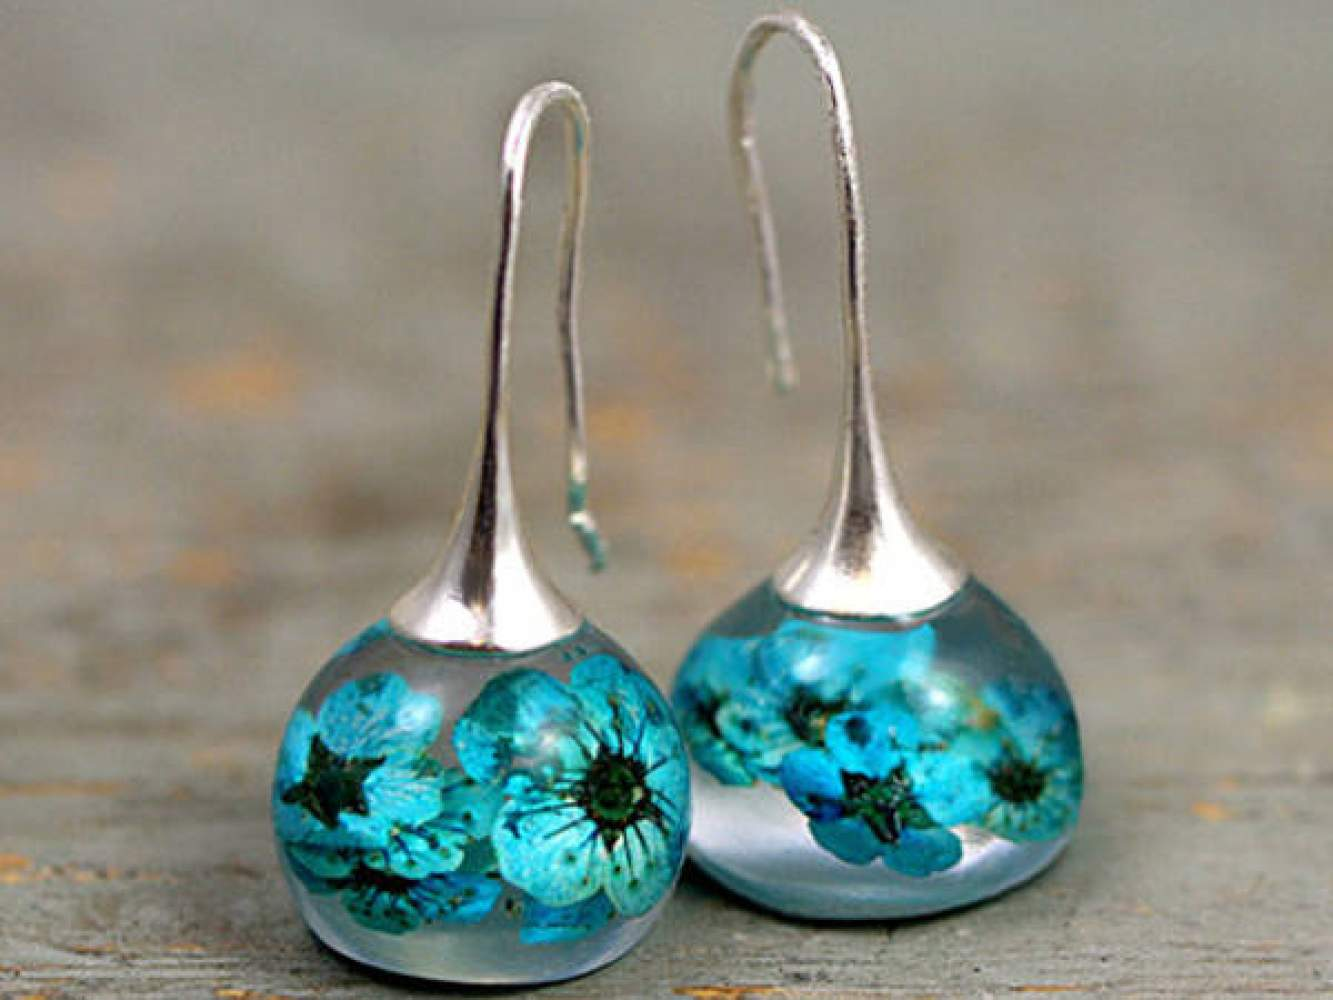 Real turquoise blossom resin earrings